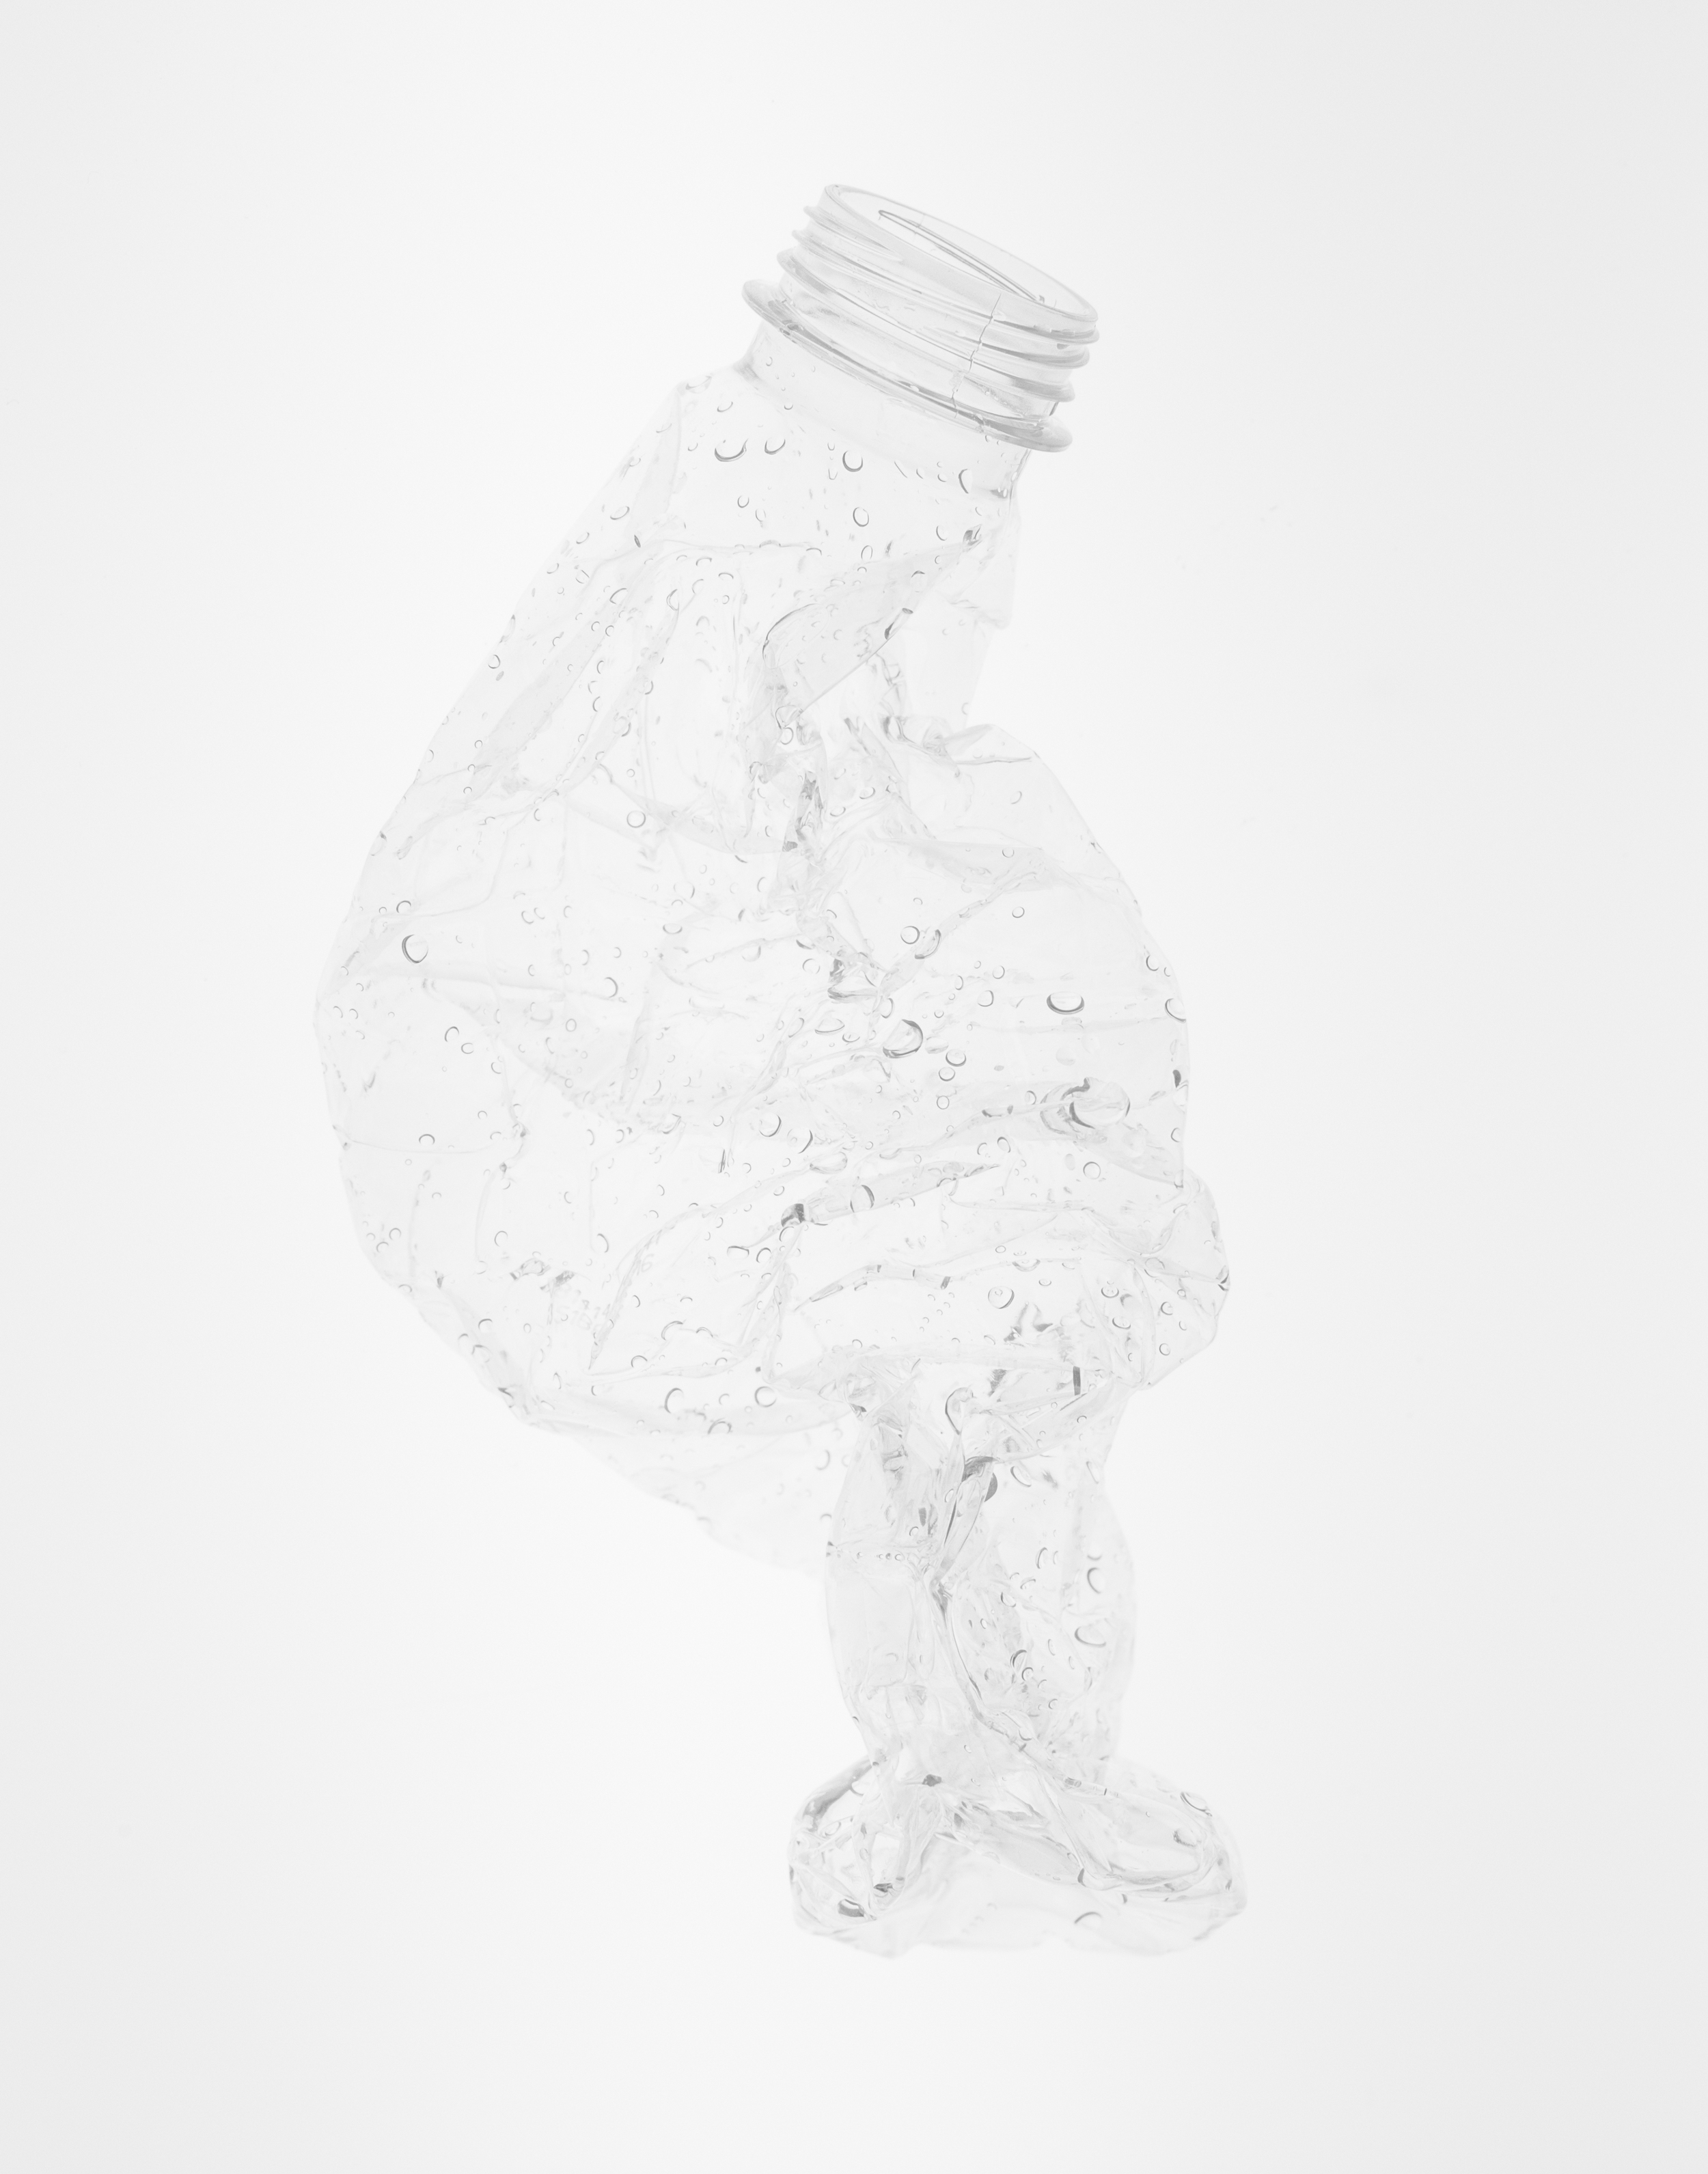 Bottle No.33, 10x8, Inkjet print, 2014